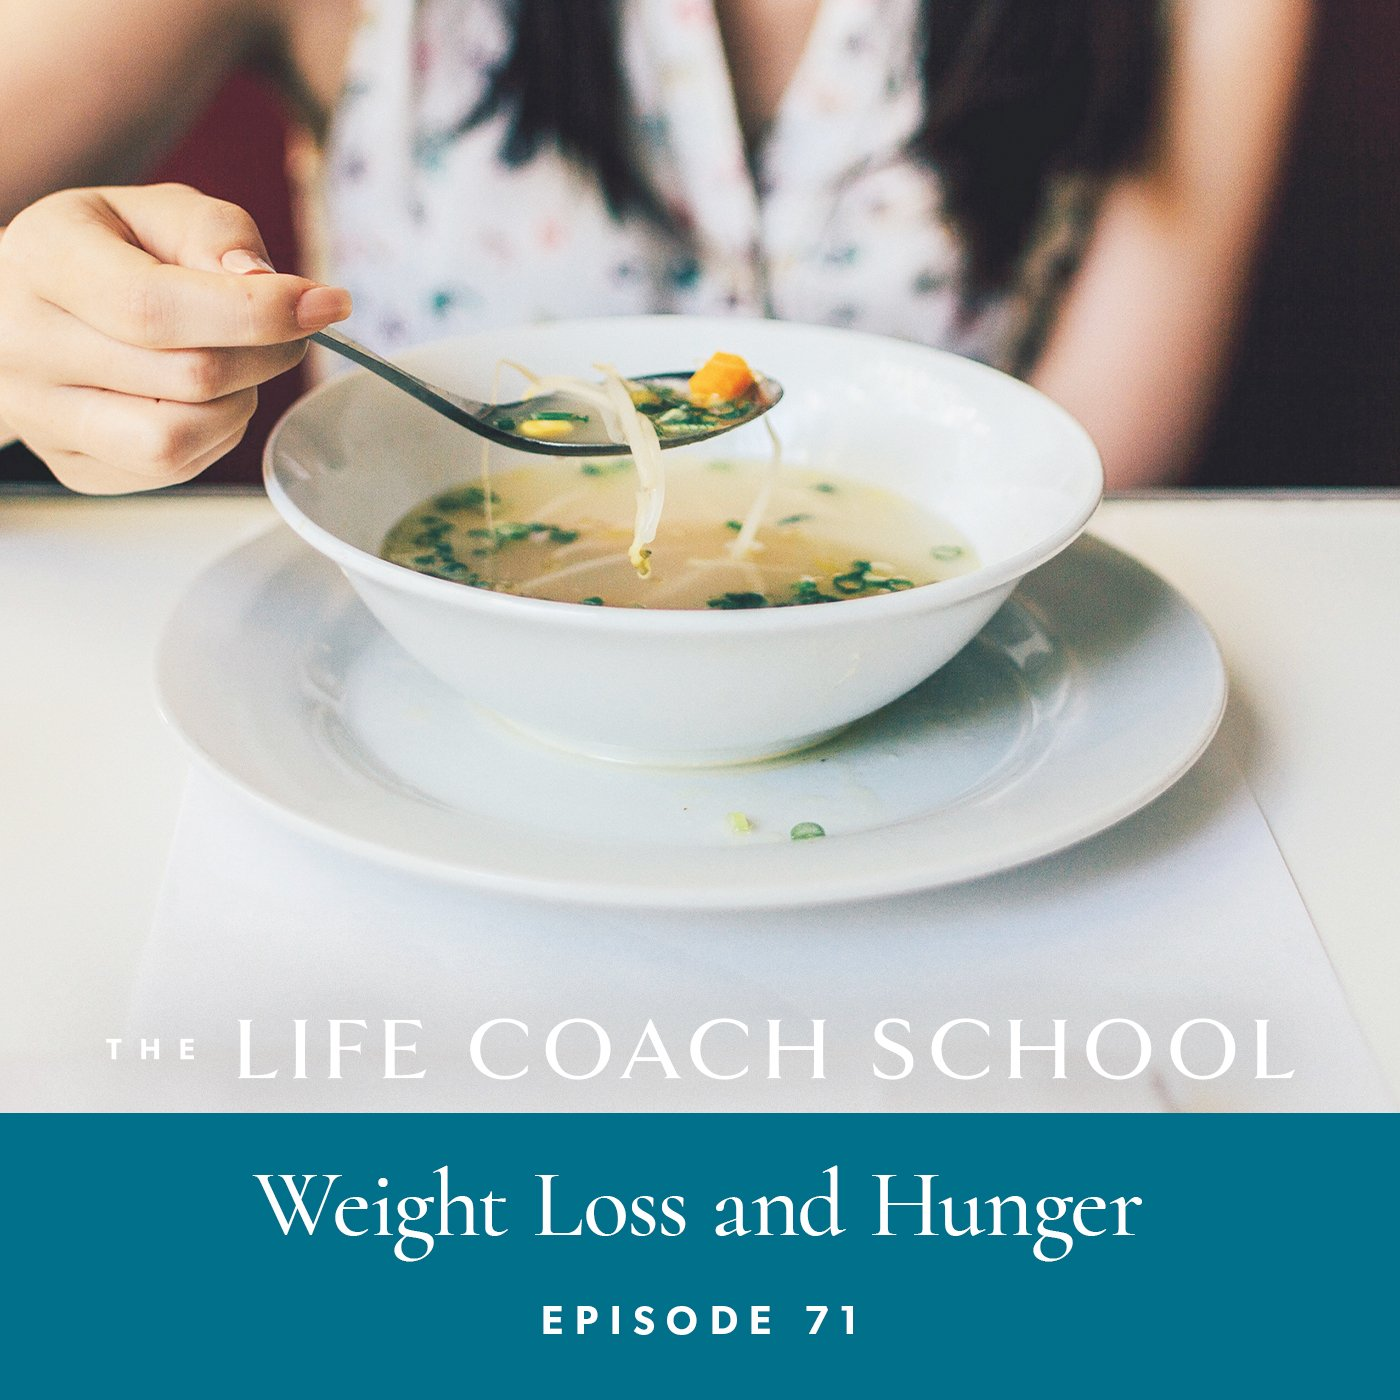 The Life Coach School Podcast with Brooke Castillo | Episode 71 | Weight Loss and Hunger